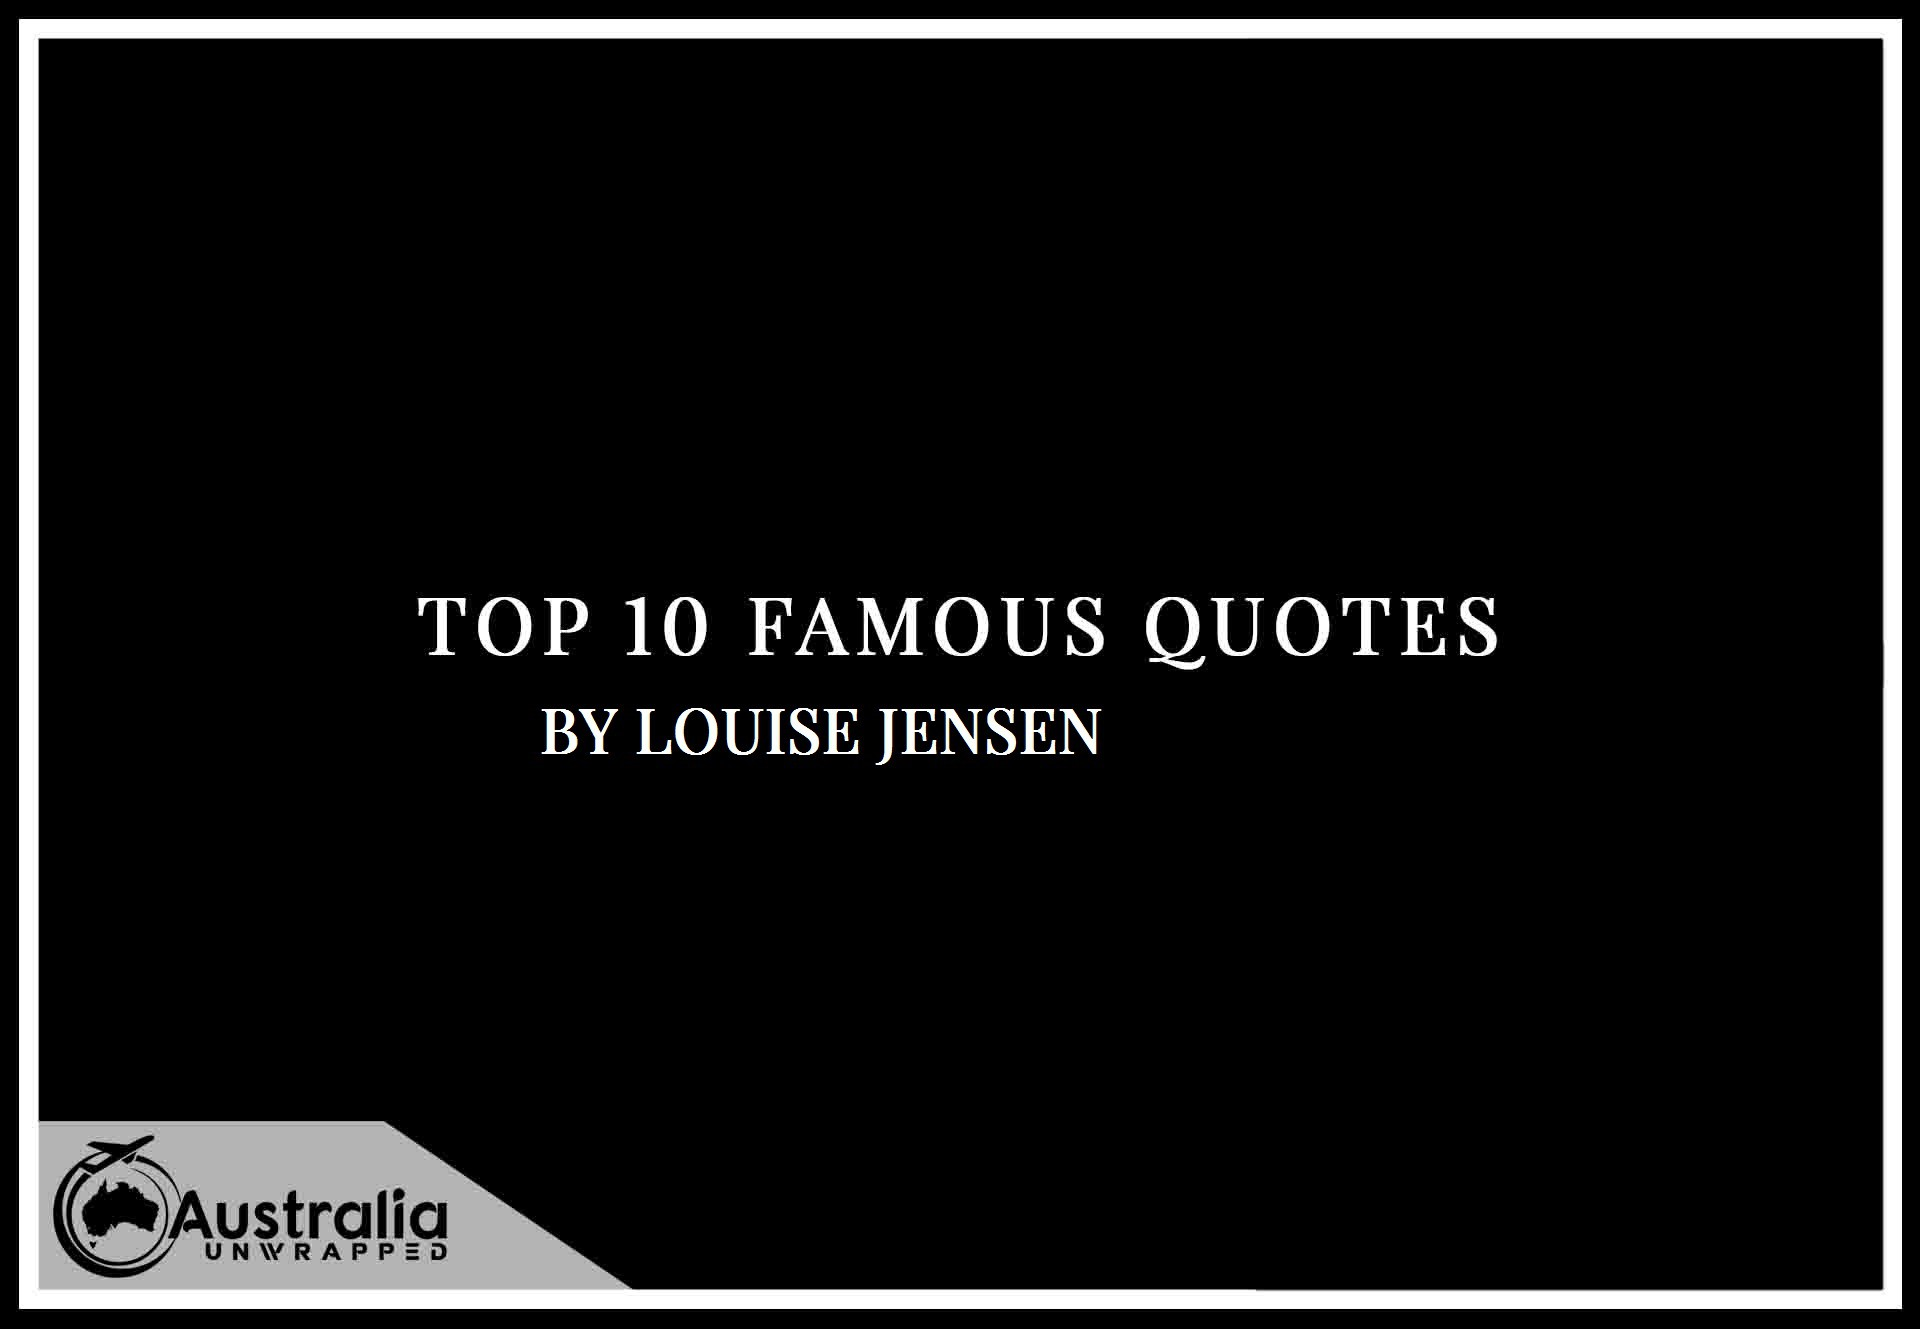 Louise Jensen's Top 10 Popular and Famous Quotes